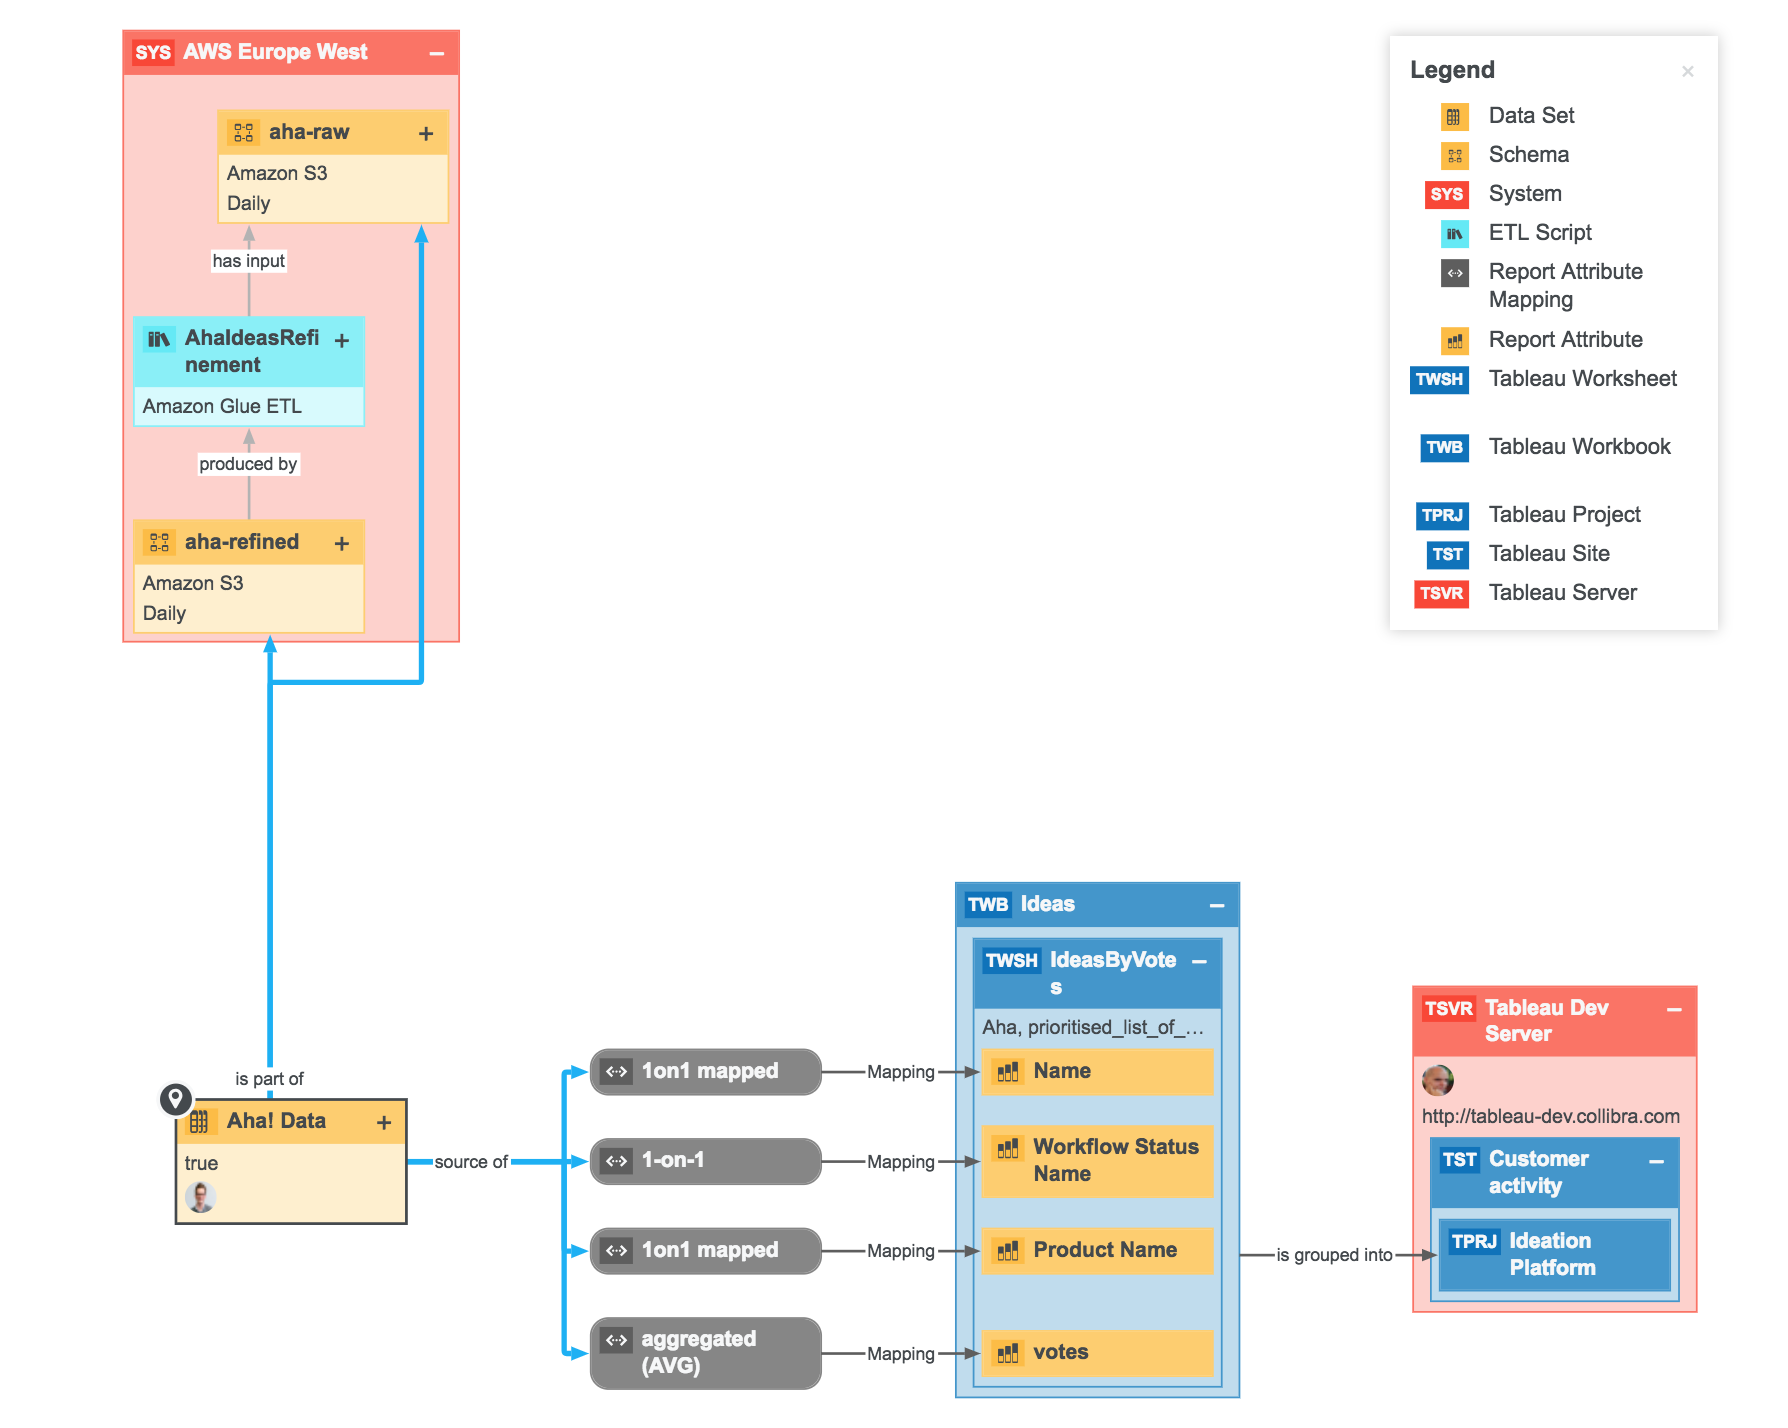 How to track and visualize data lineage - Linkurious |Data Lineage